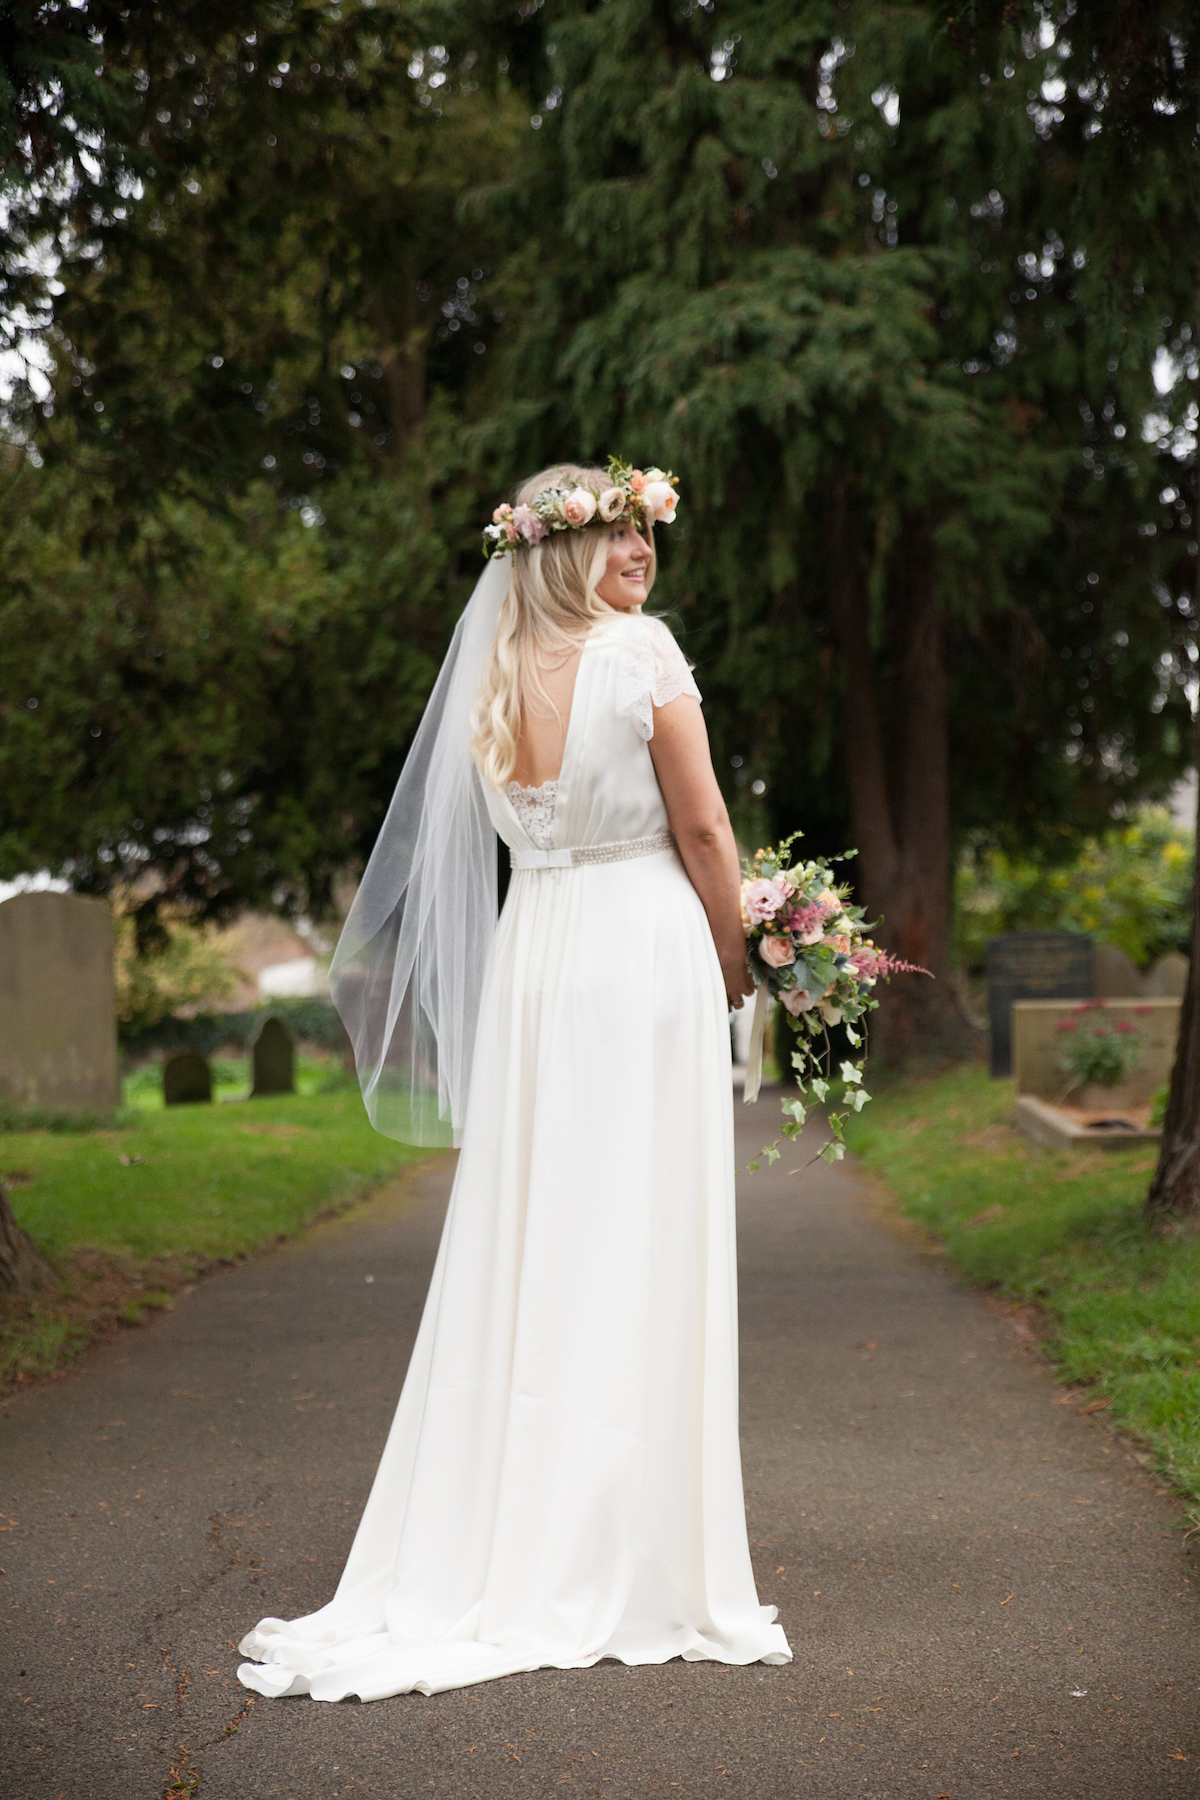 A Charlie Brear Bride Gown And Floral Crown For A Pretty